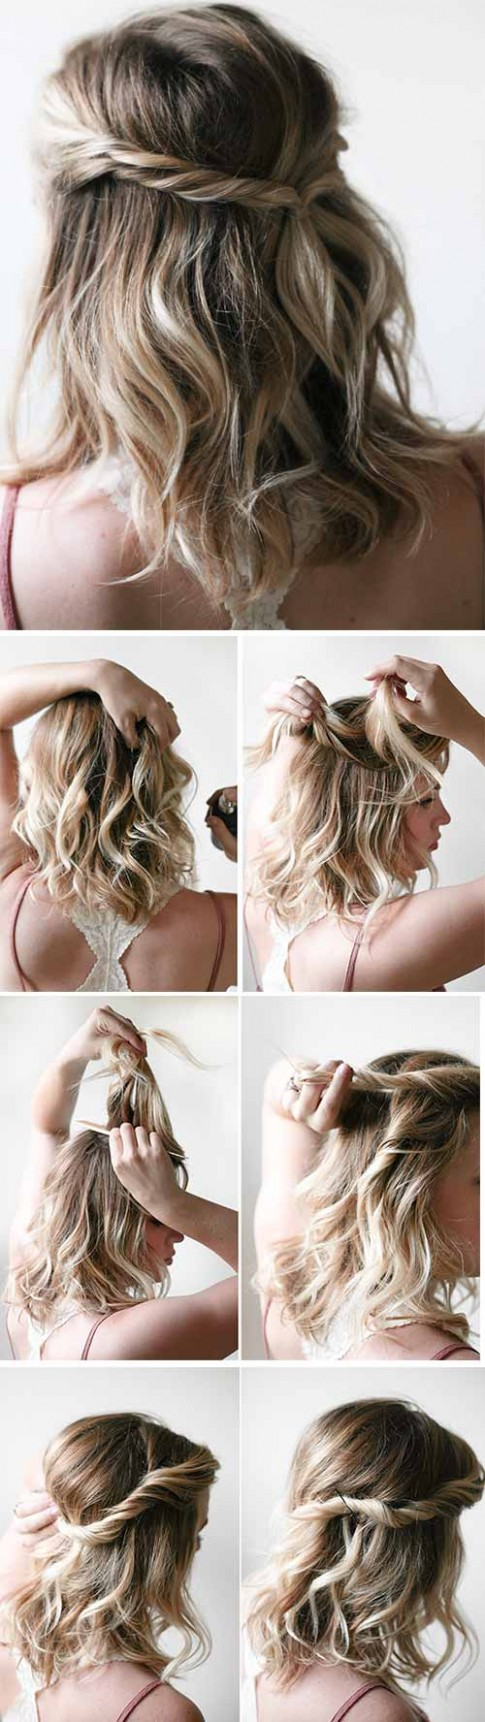 8 Incredible DIY Short Hairstyles A Step By Step Guide Good Hairstyles For Short Hair